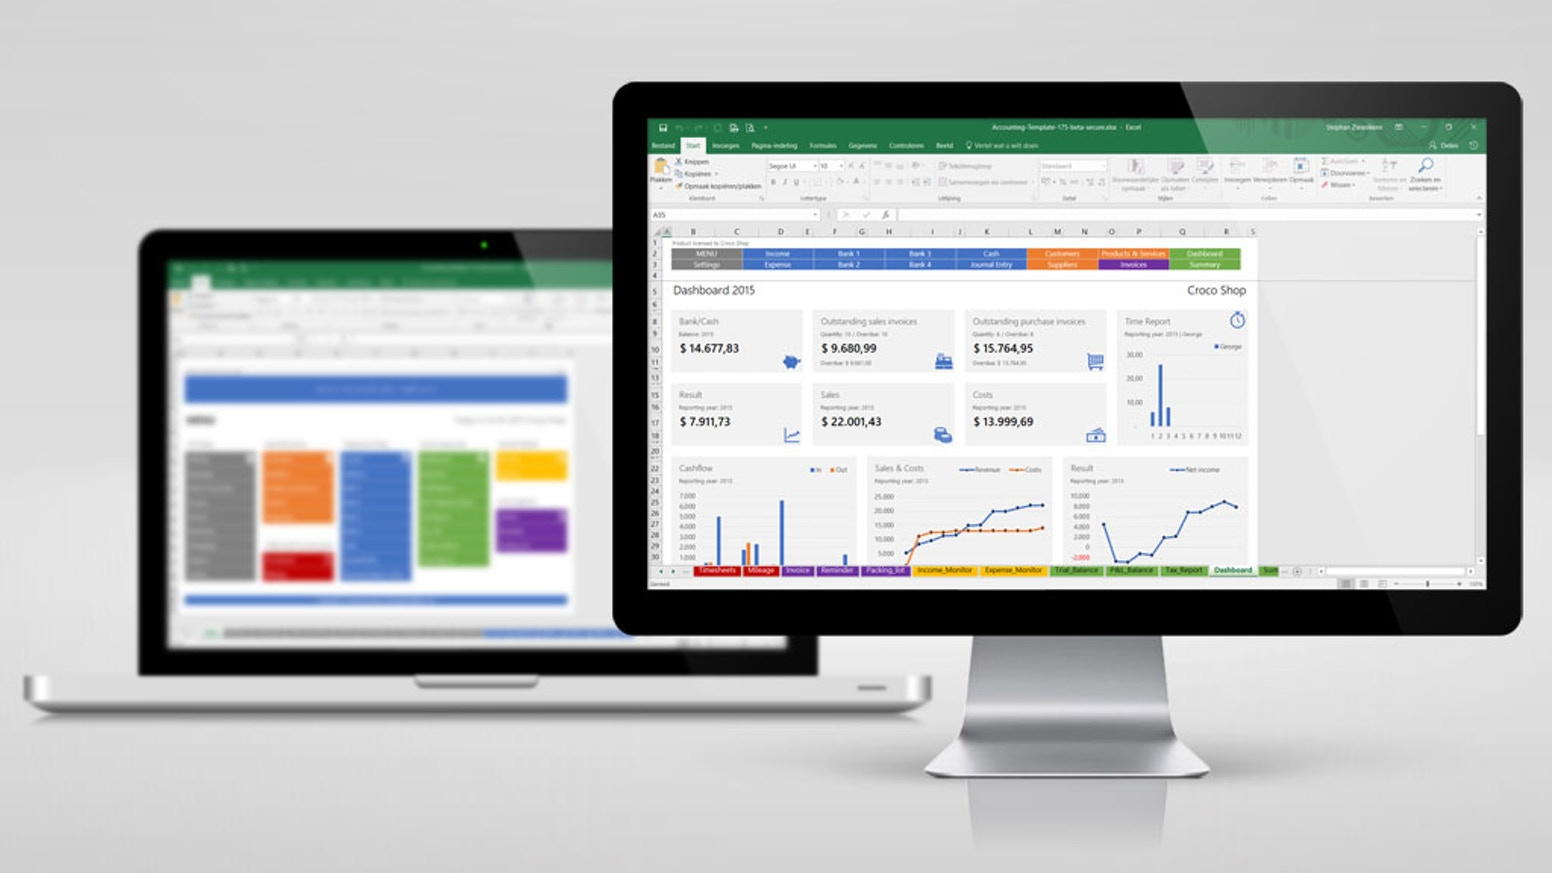 Excel accounting template by stephan zwanikken kickstarter the all in one accounting solution in excel for small business owners friedricerecipe Gallery